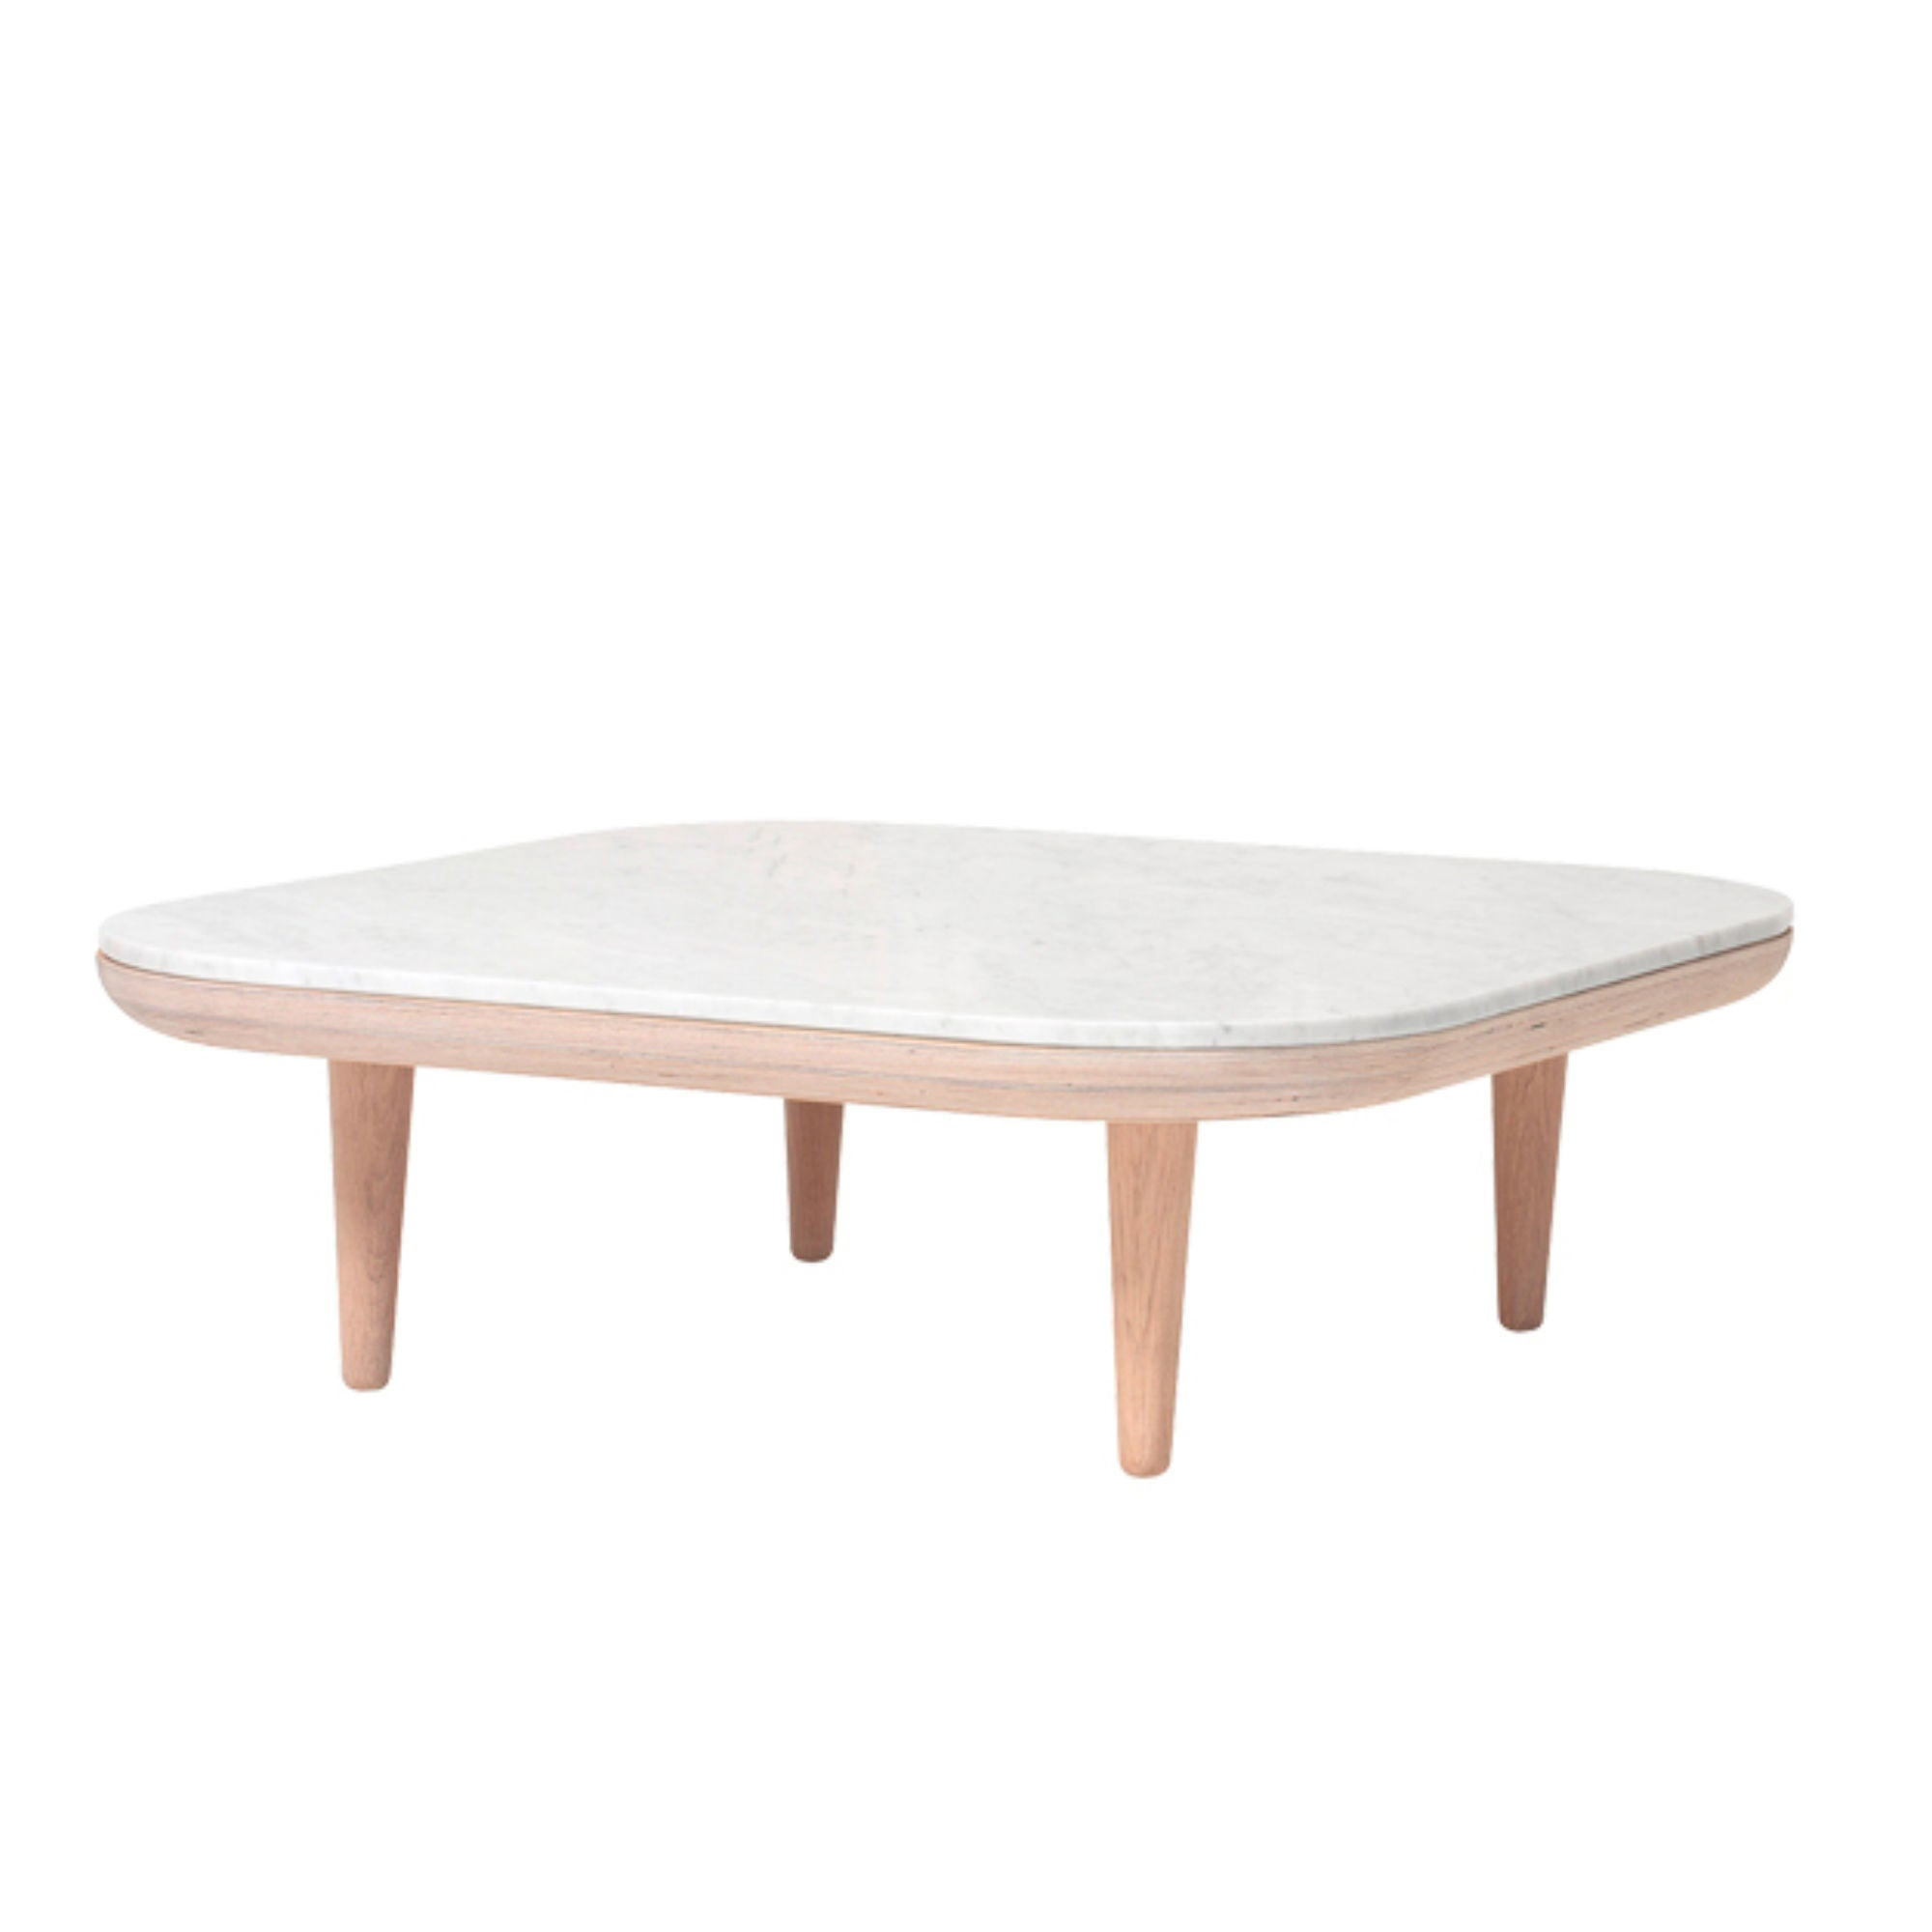 &Tradition SC4 Fly Table , White Oiled Oak-honed Bianco Carrara